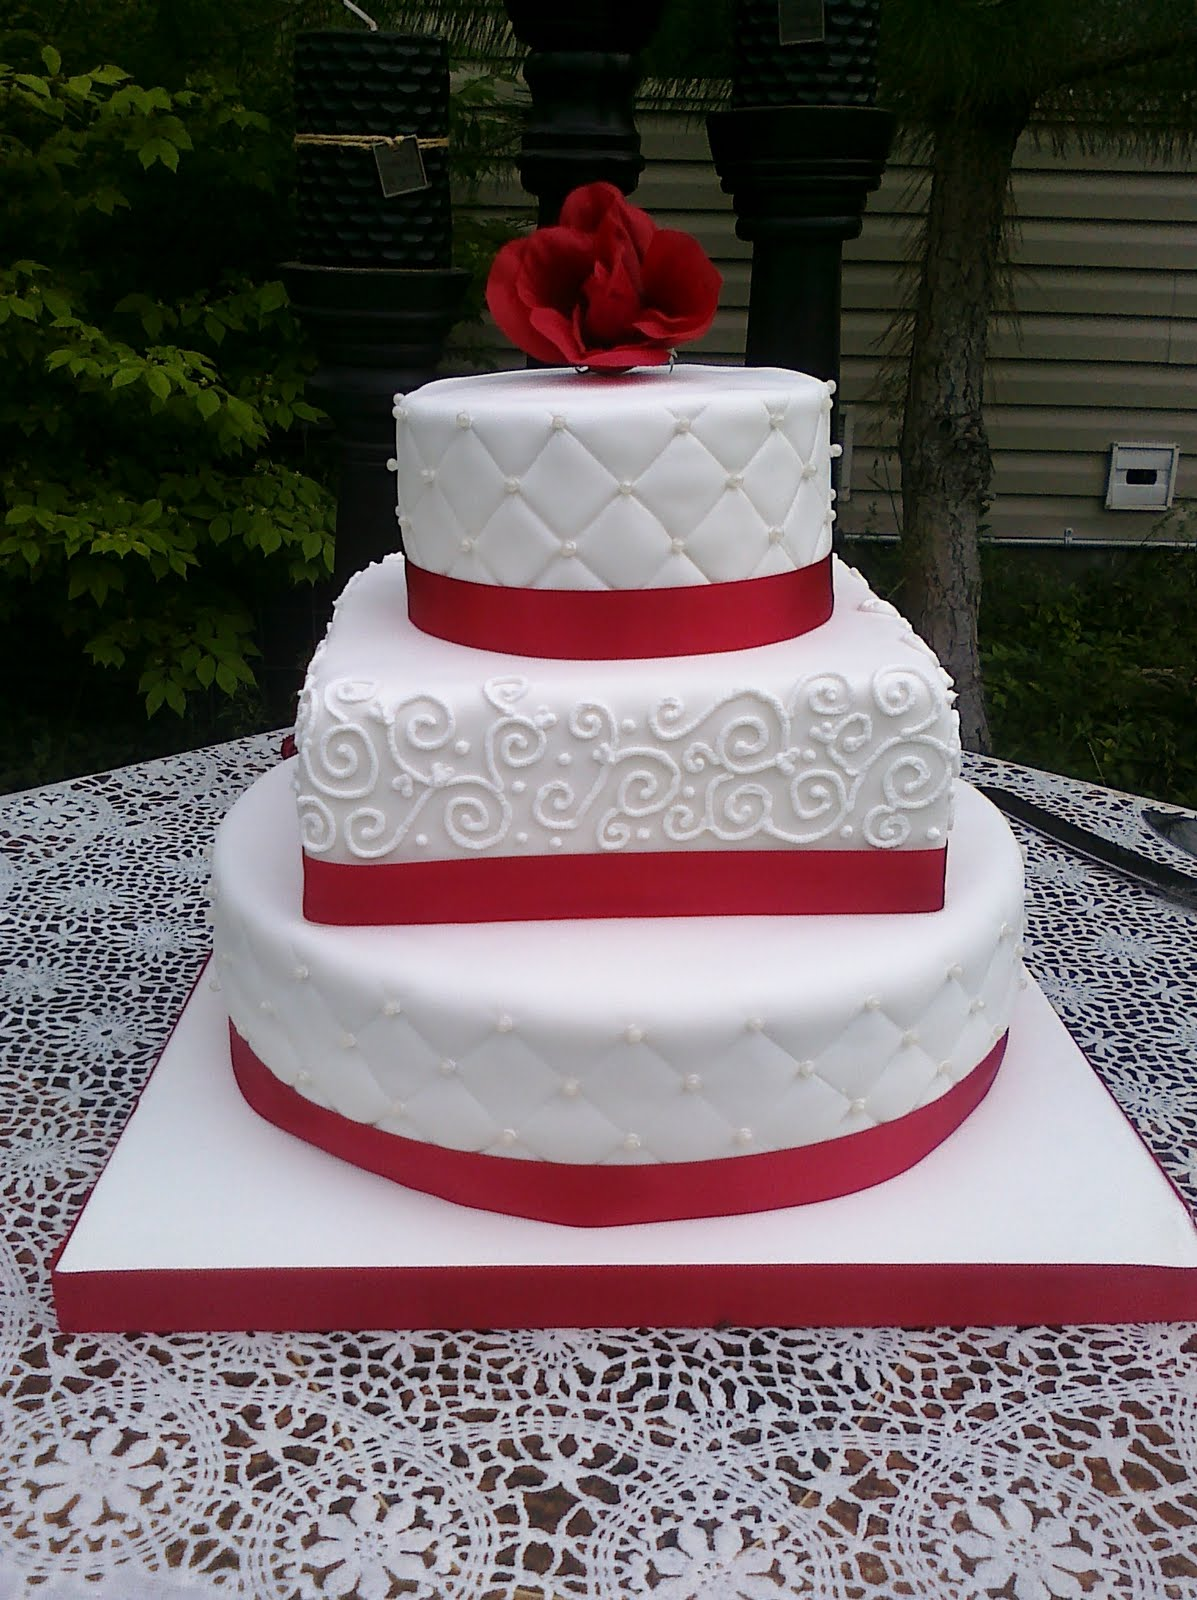 Cake by Dottie Red and White wedding